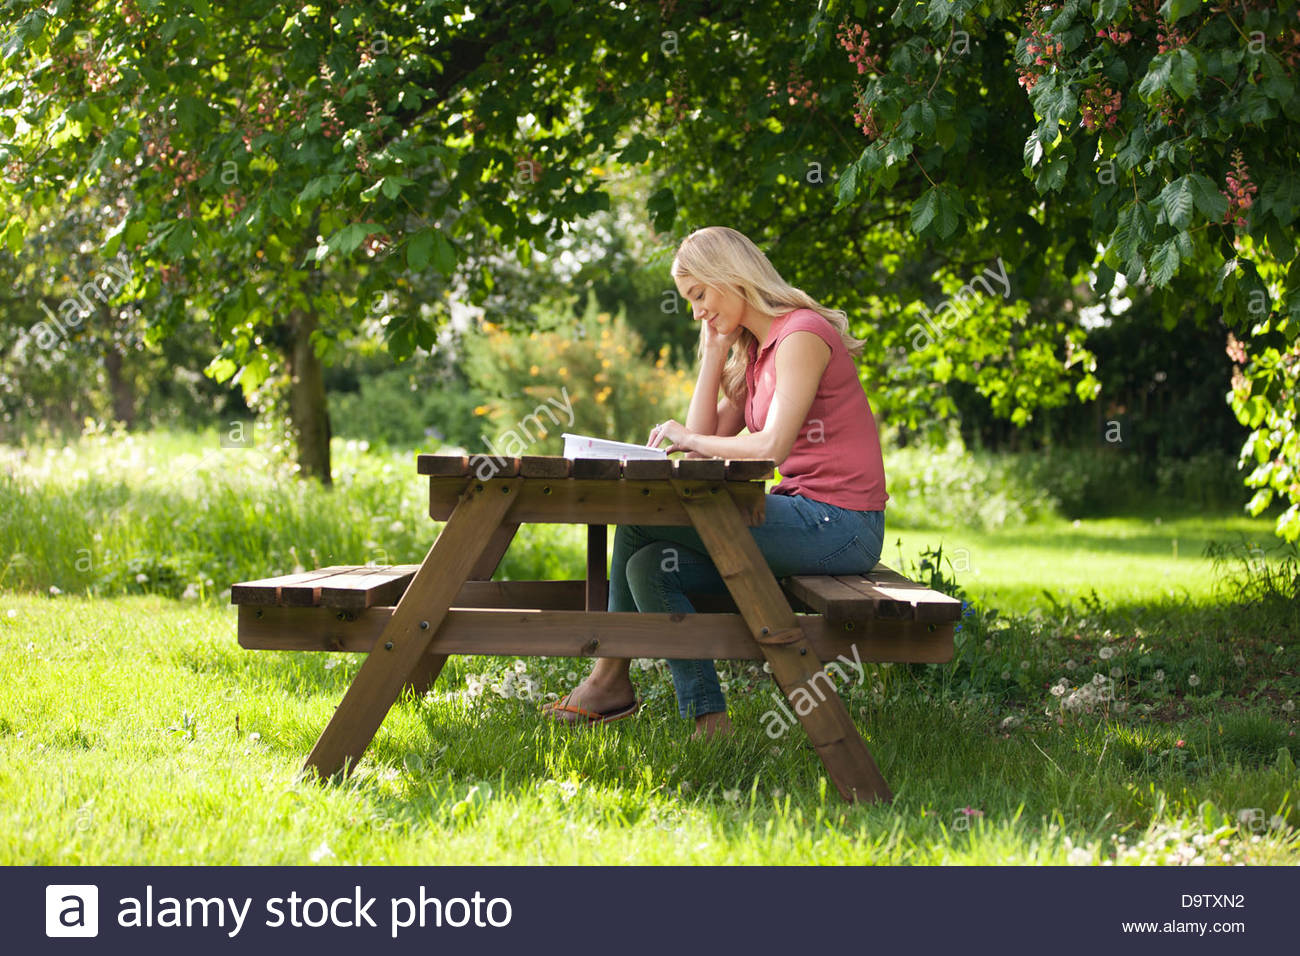 A young woman sitting on a garden bench reading a book - Stock Image